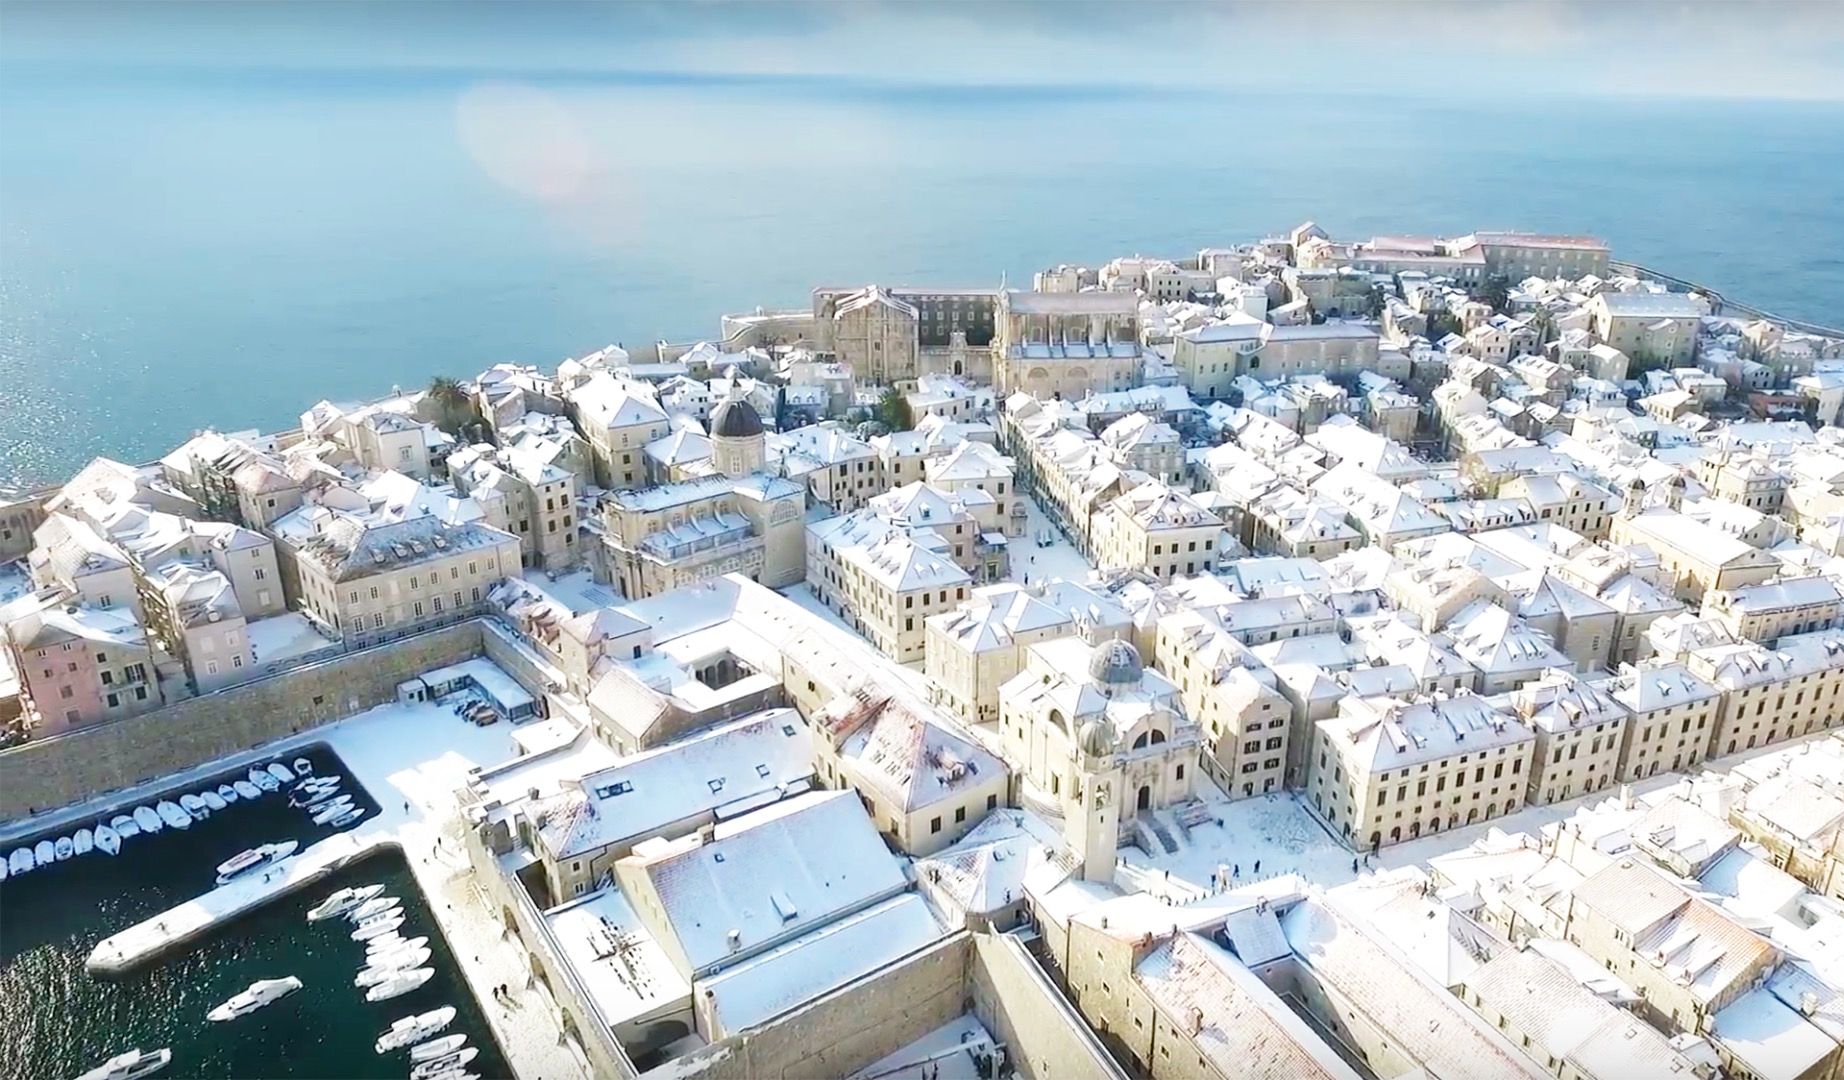 Snow video that will take your breath away